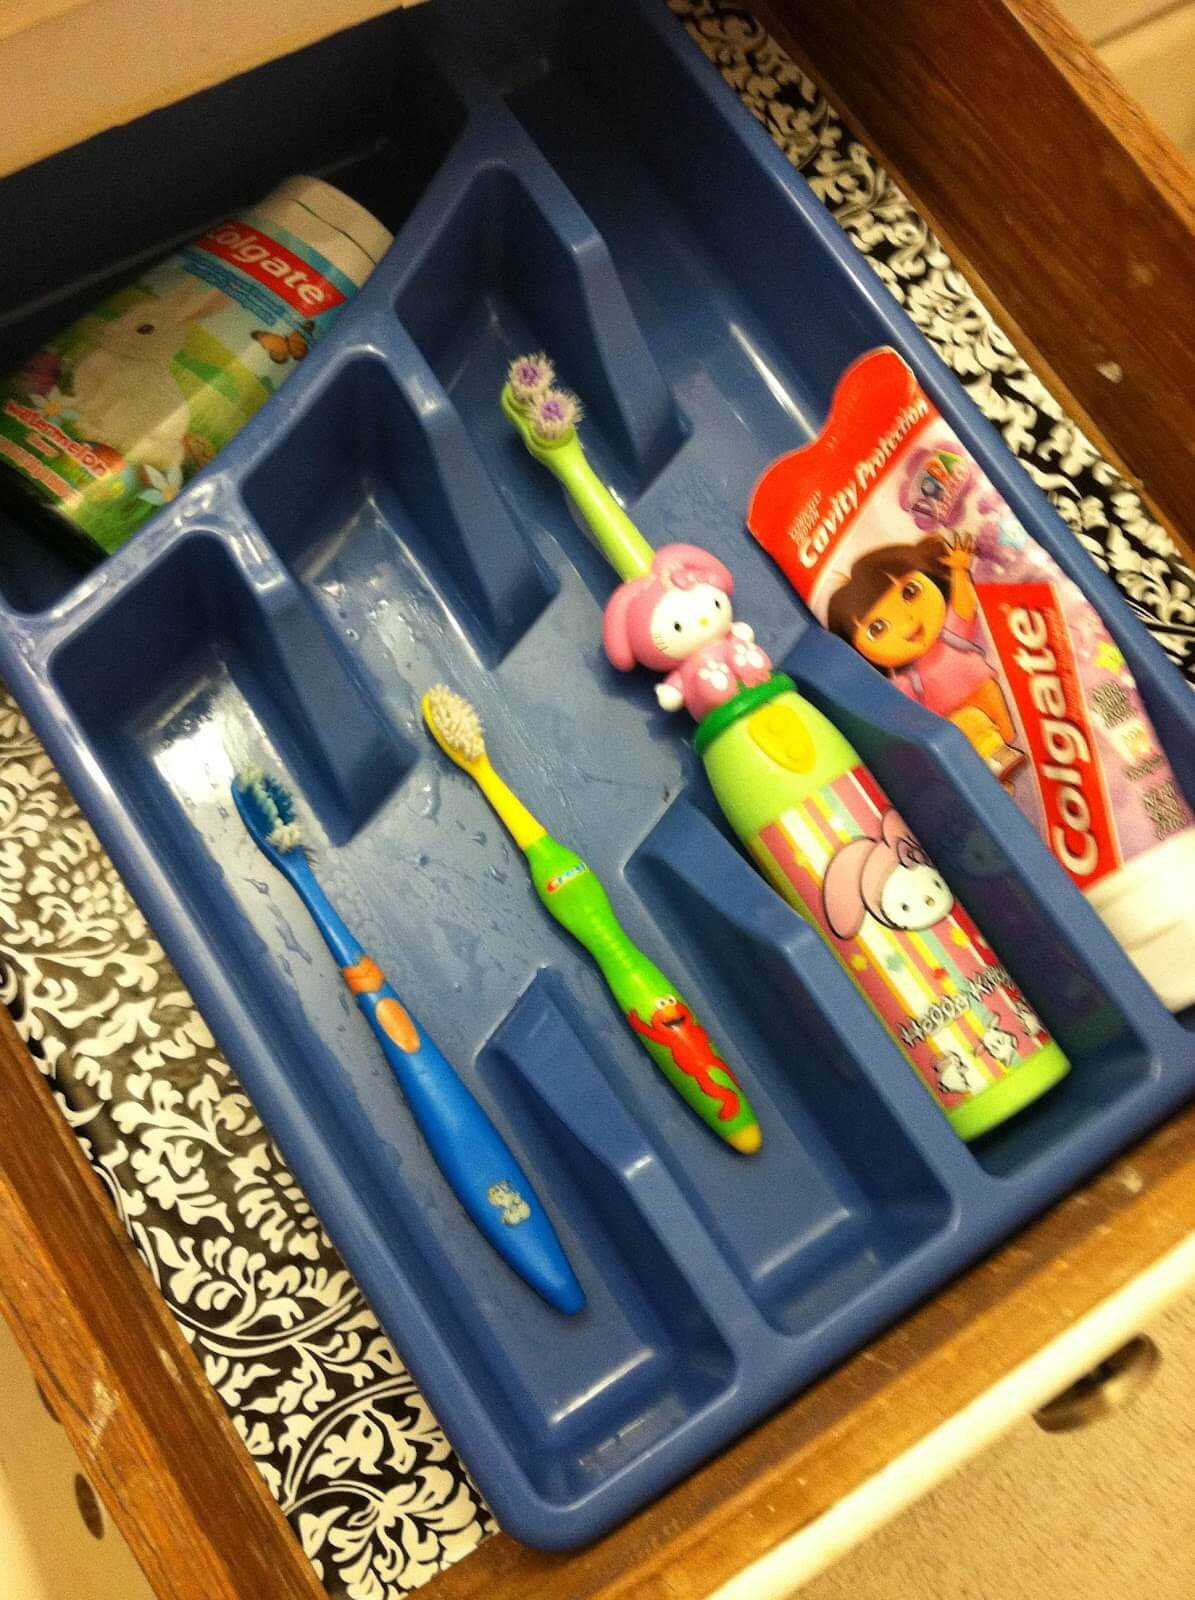 Cutlery Holder Organizes Toothbrushes and Toothpaste